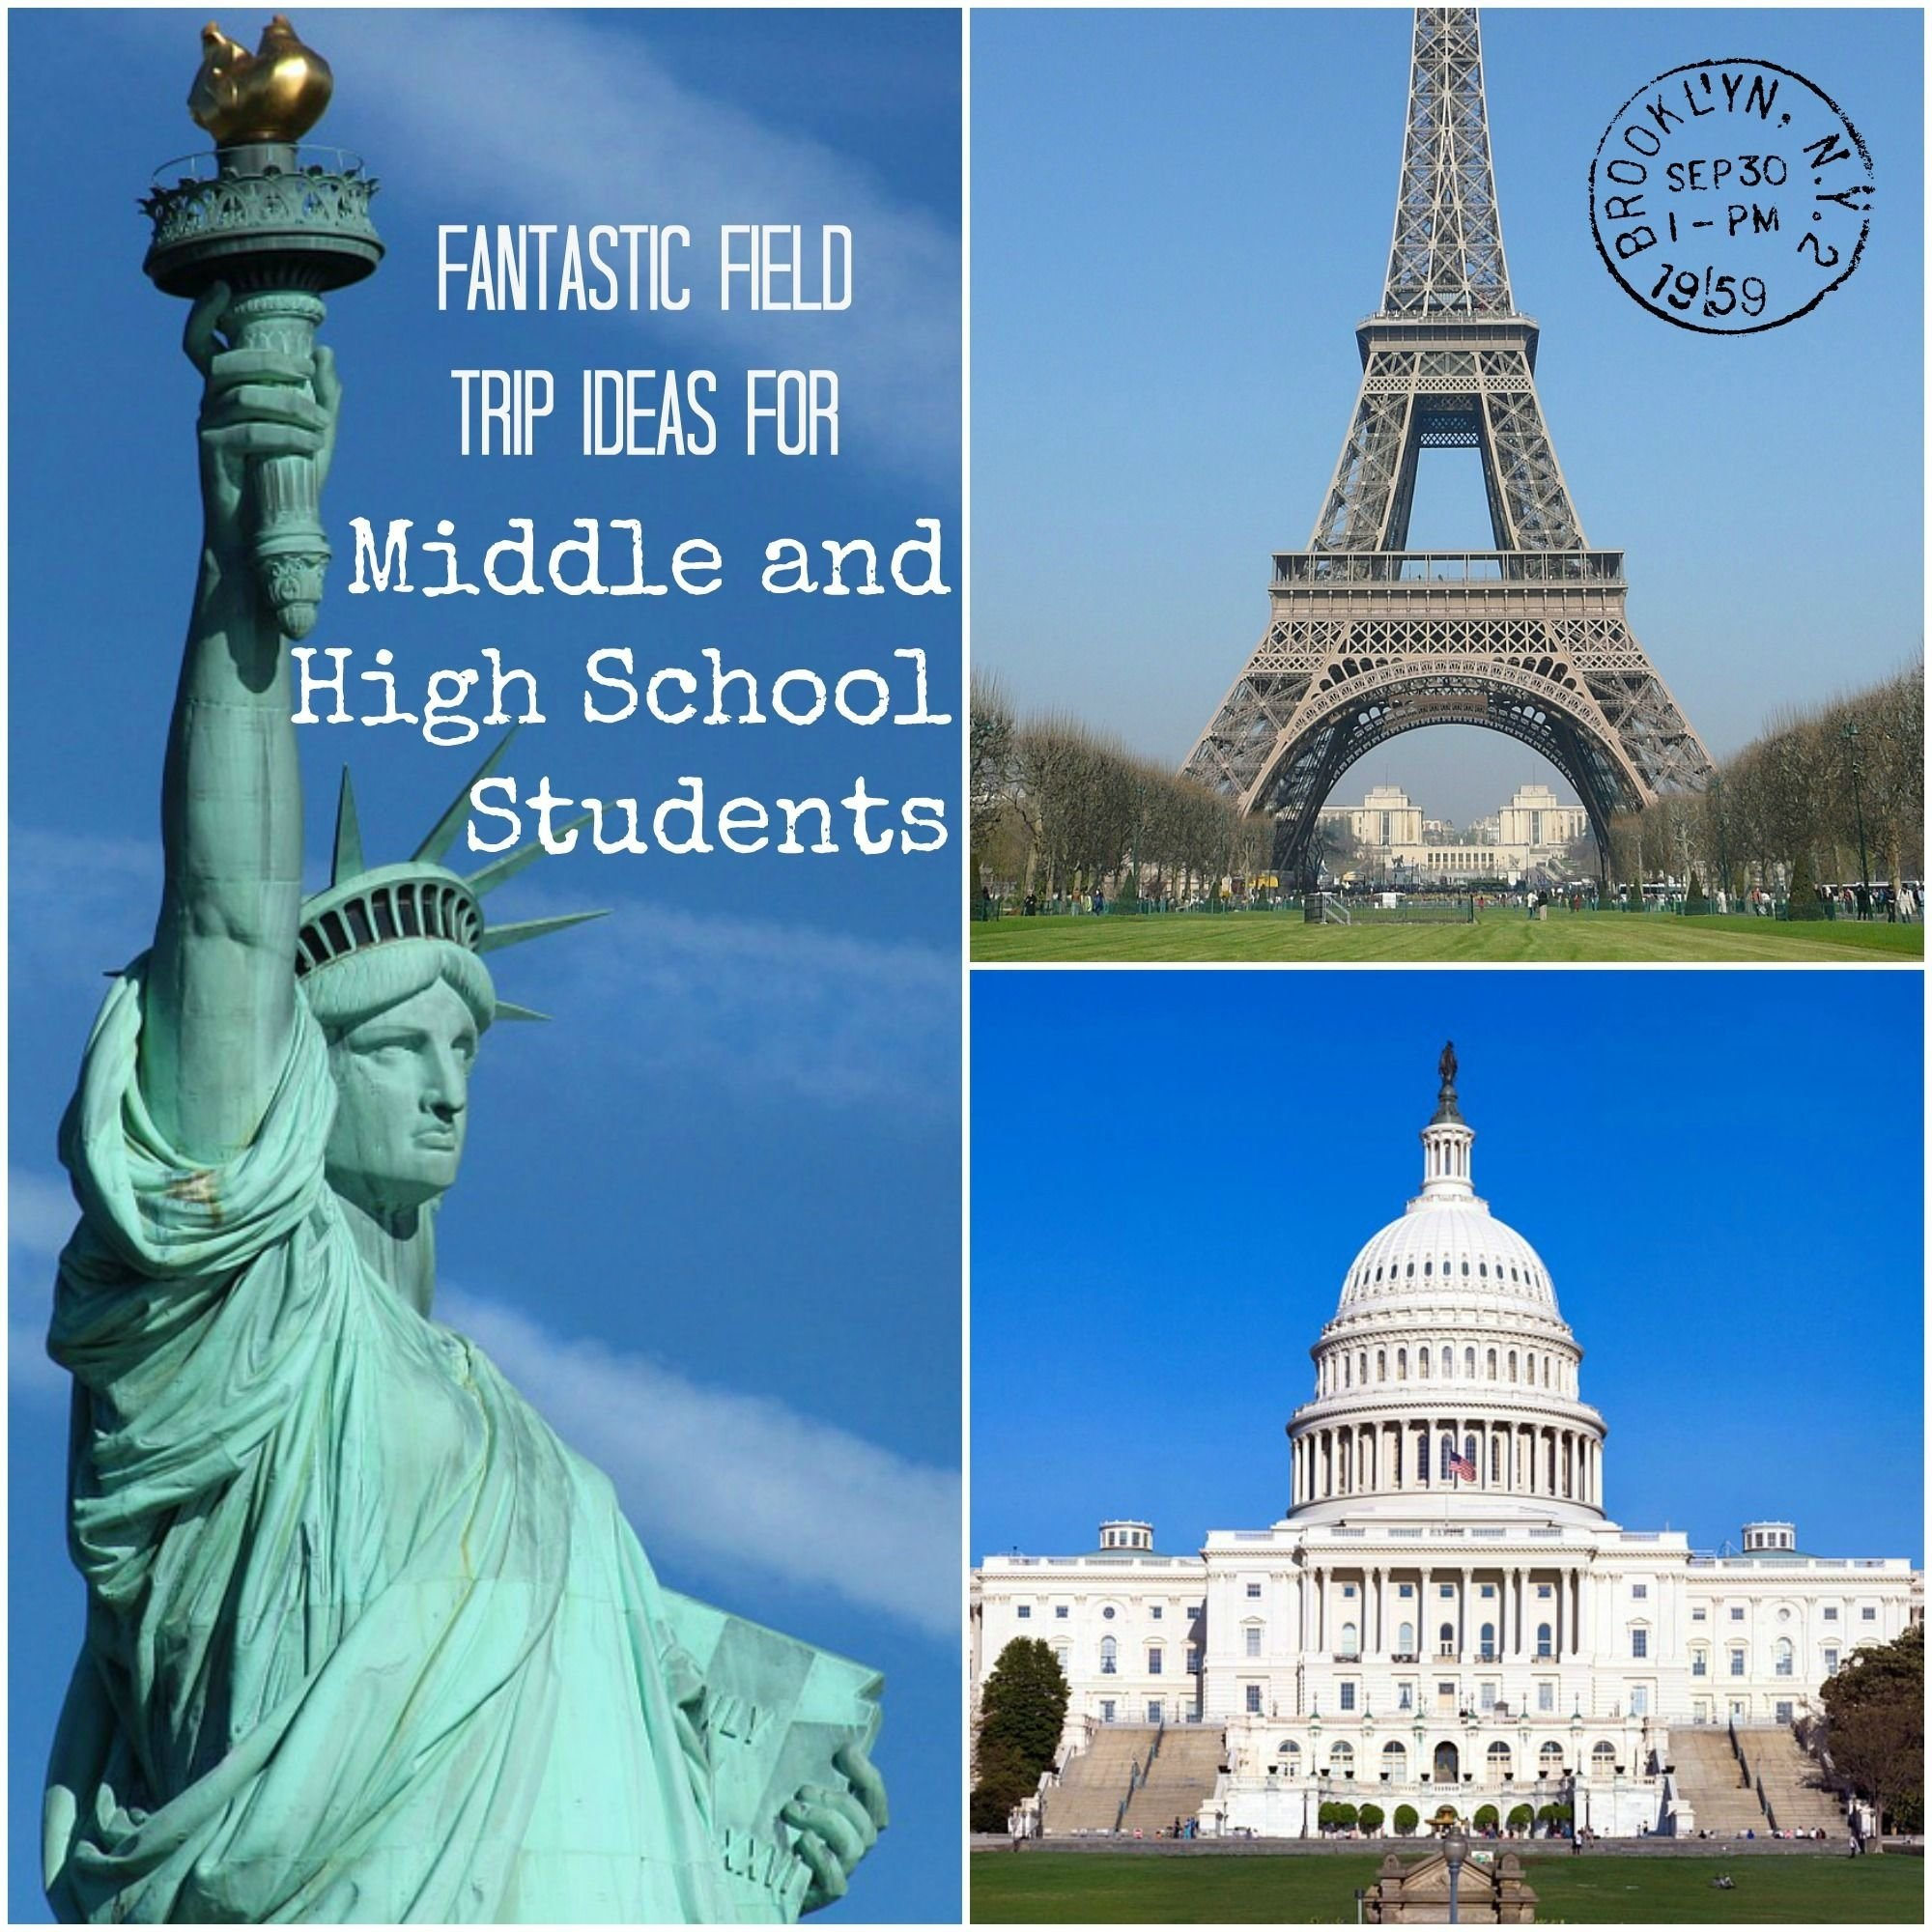 10 Most Recommended Field Trip Ideas For Elementary Students field trip ideas for middle and high school students field trips 2021